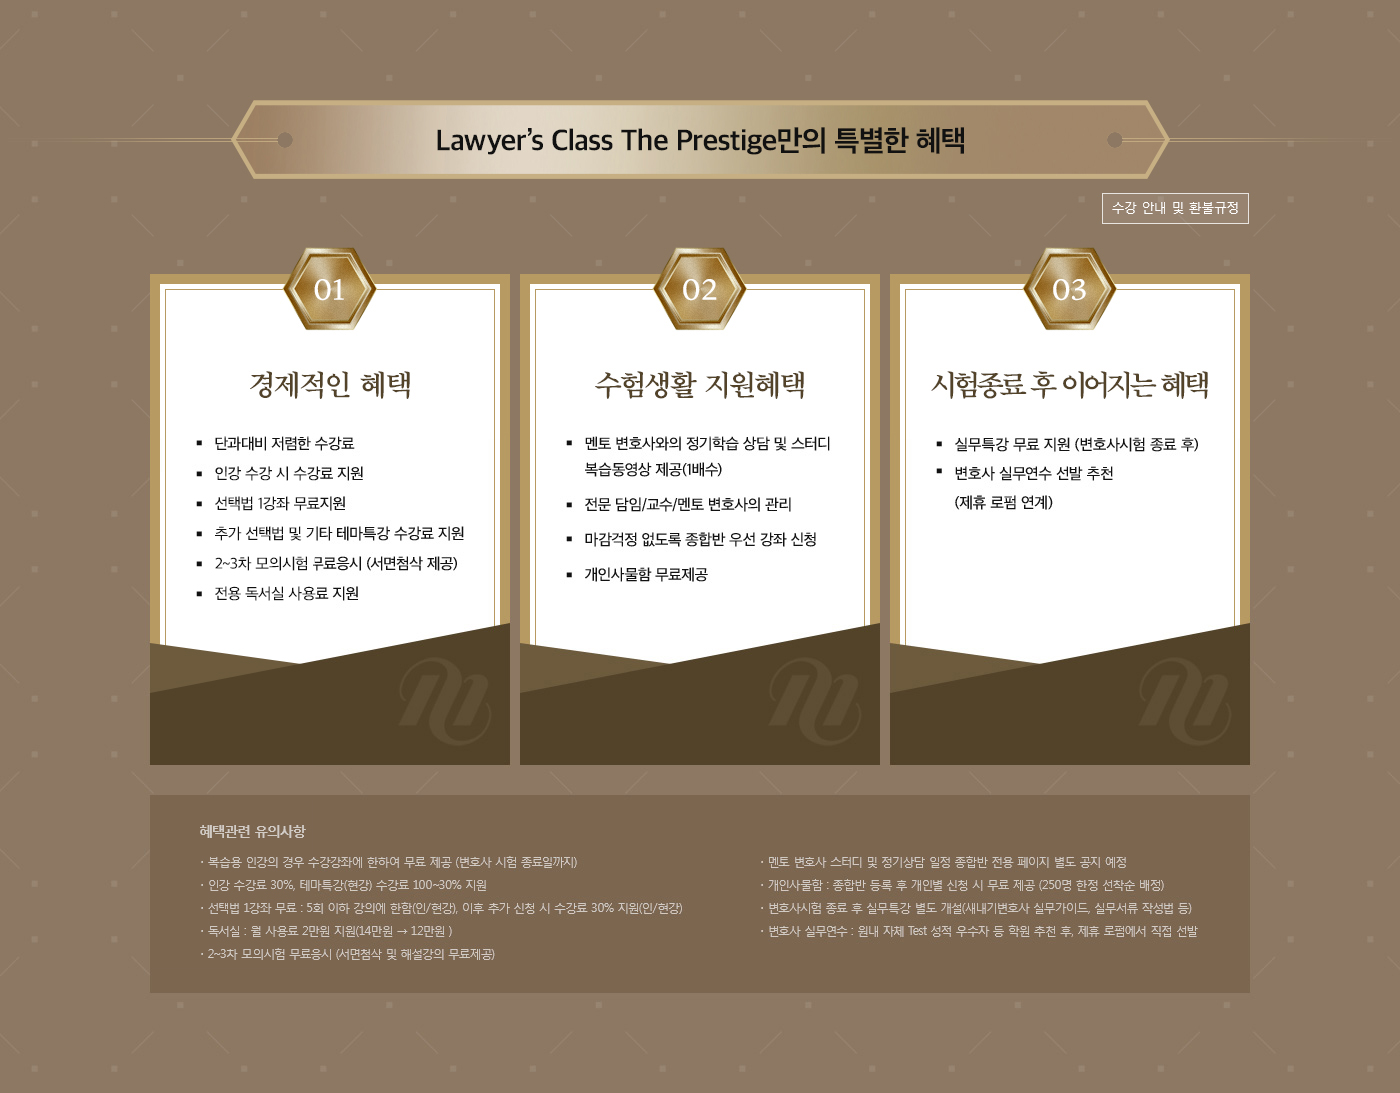 Lawyer's Class The Prestige만의 특별한 혜택